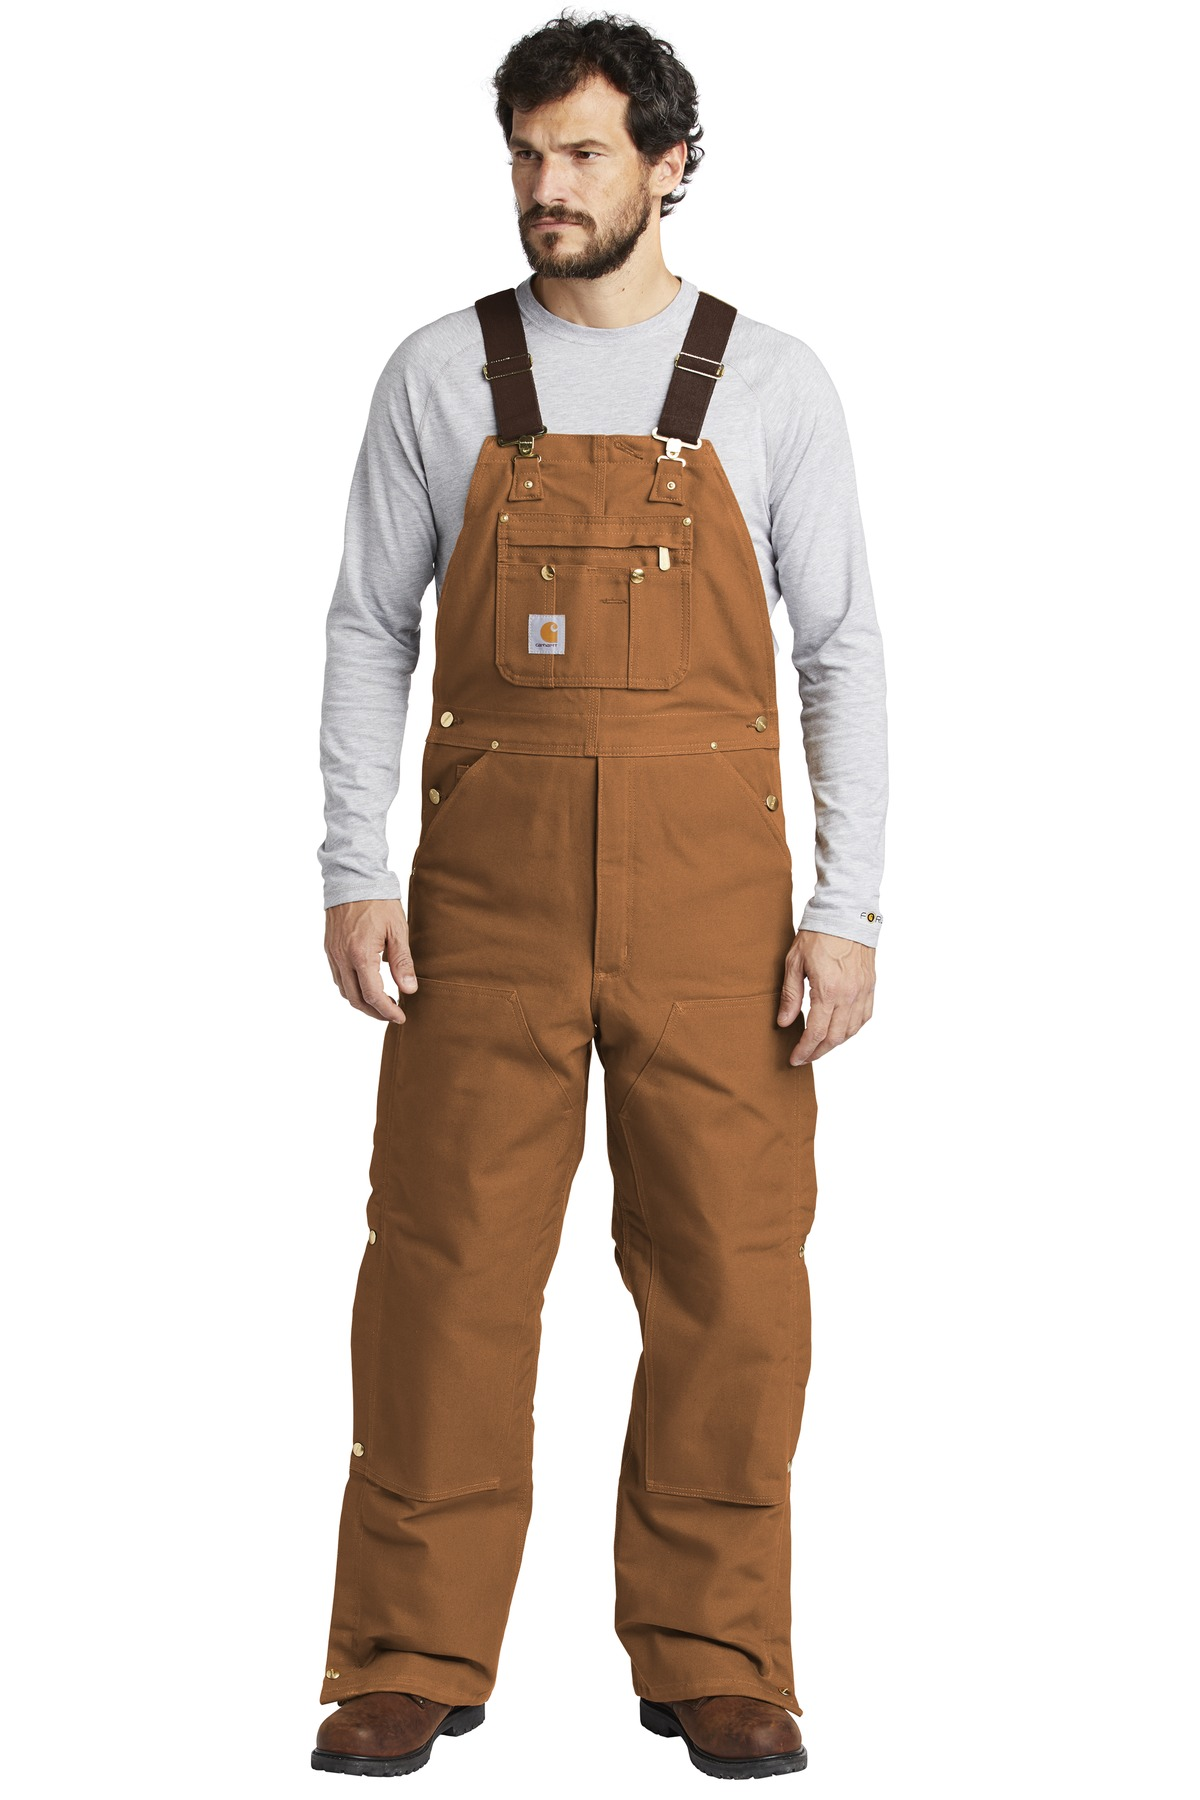 Carhartt  ®  Duck Quilt-Lined Zip-To-Thigh Bib Overalls. CTR41 - Carhartt Brown